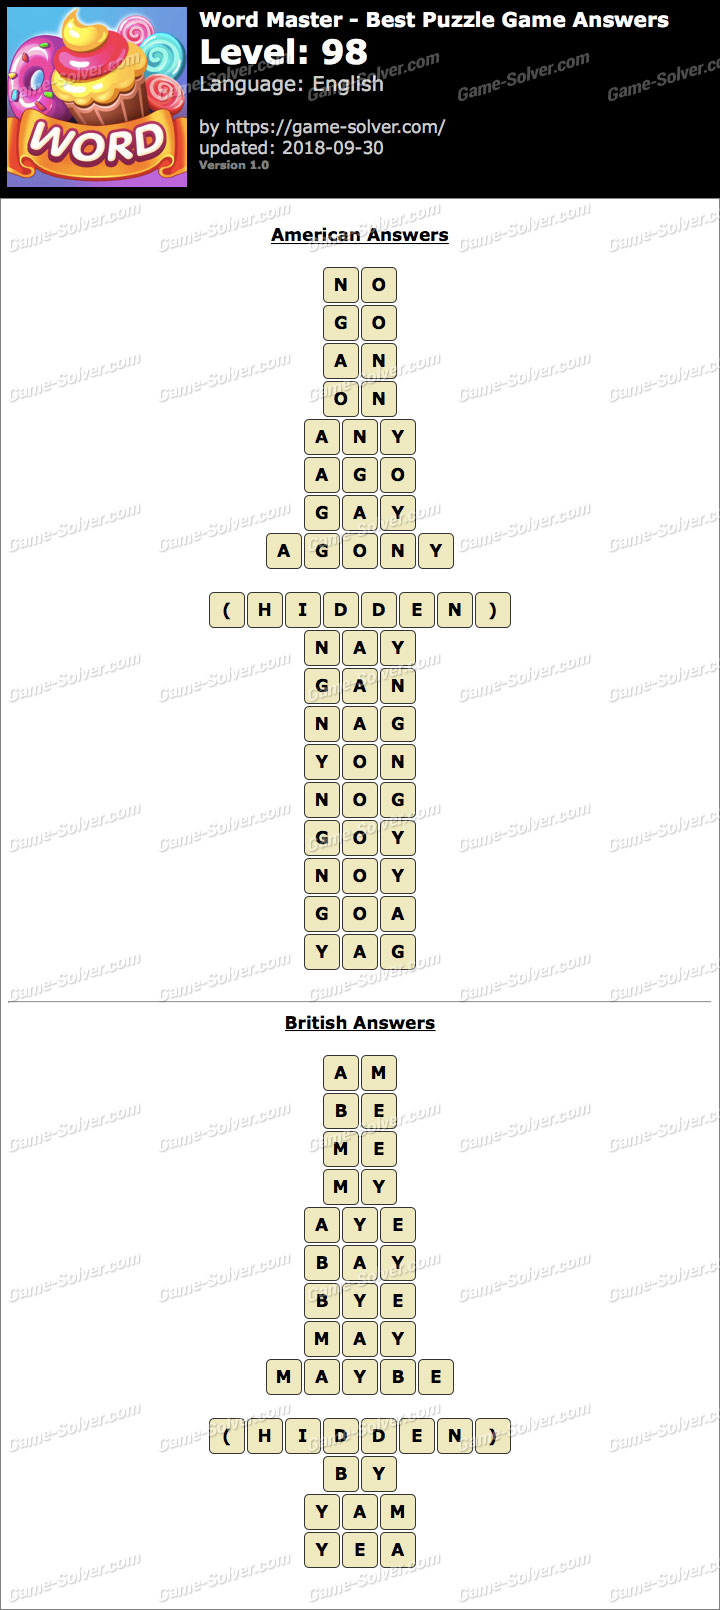 Word Master-Best Puzzle Game Level 98 Answers